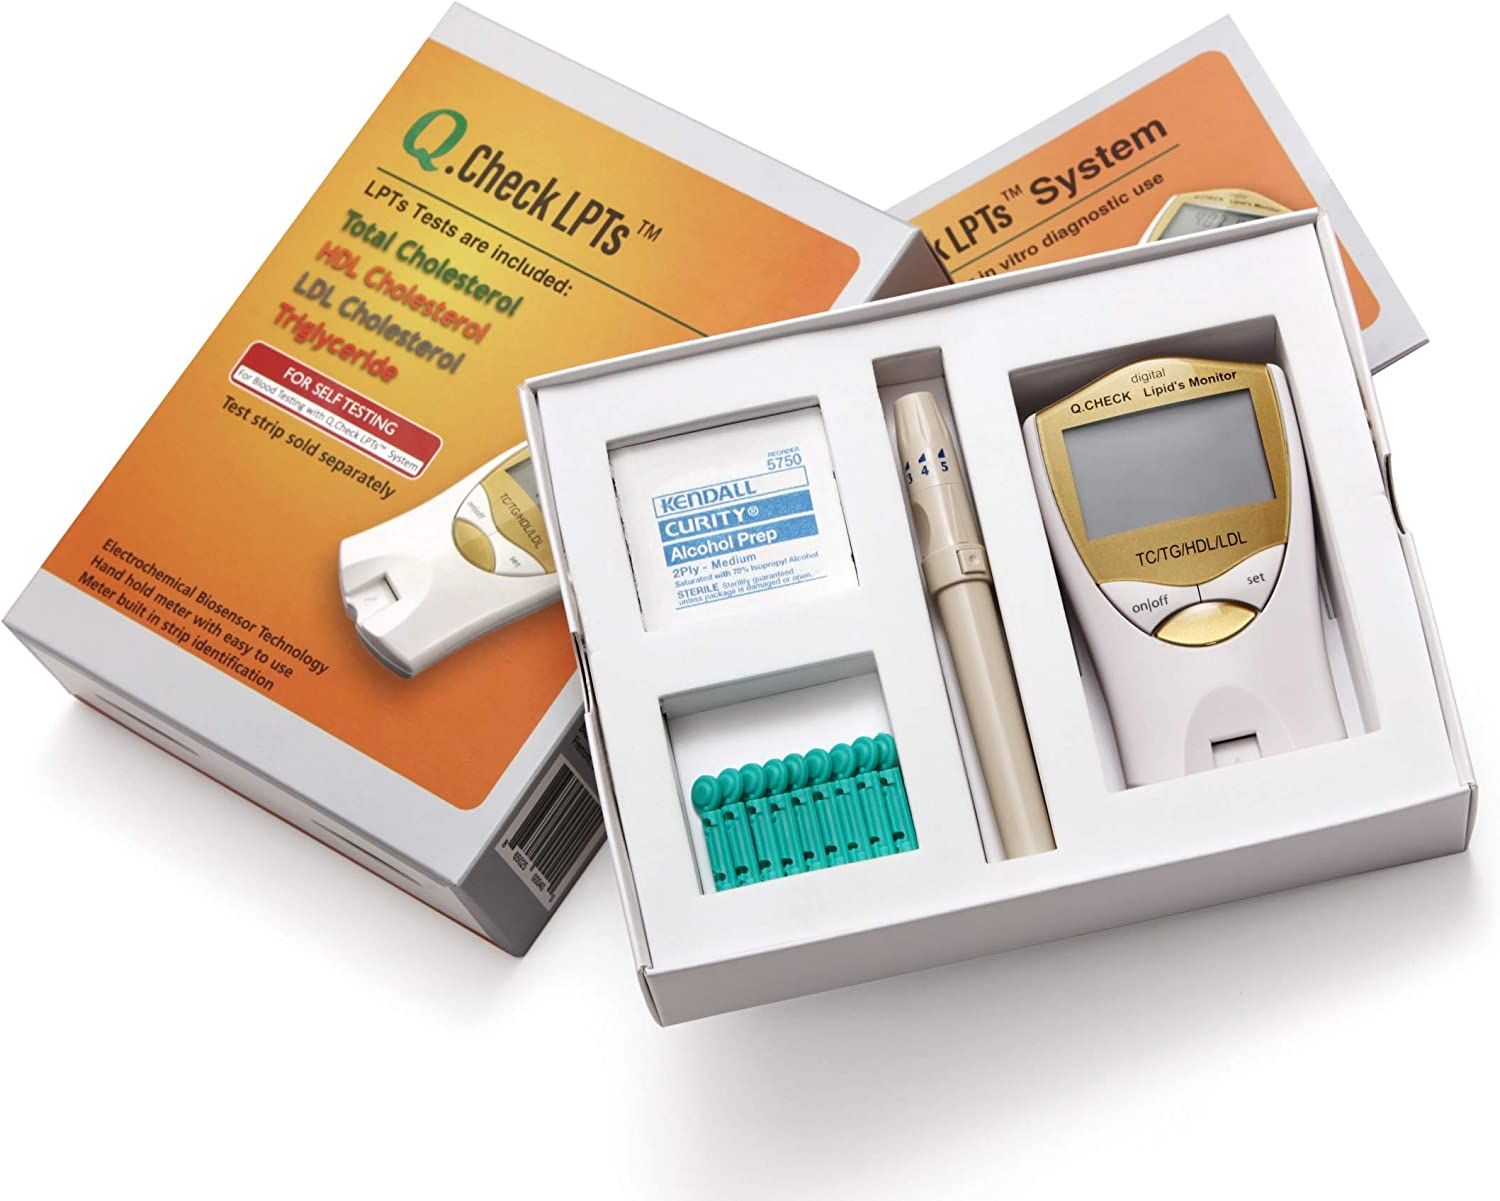 Helse Q.Check Digital Home Cholesterol & Lipid Test Meter, Monitors Total Cholesterol, LDL, HDL, and Triglycerides